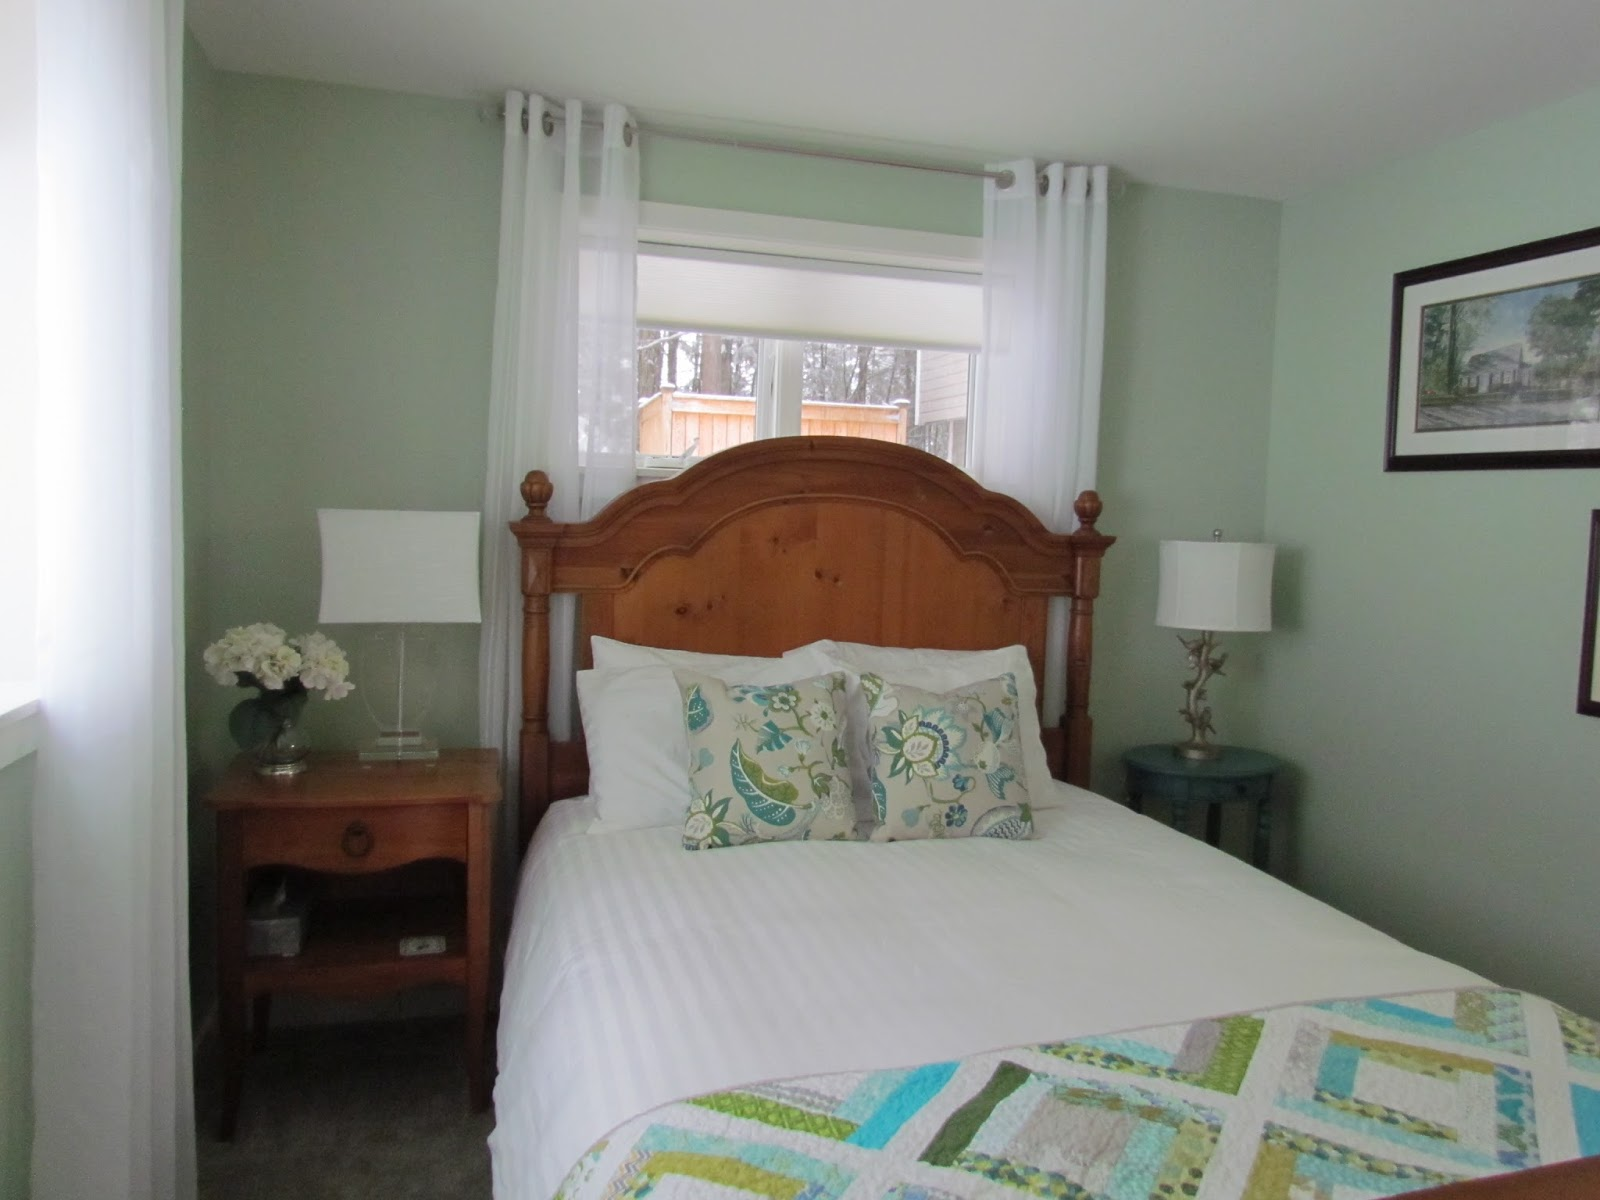 Bunk Bed Quilts And Family Bedroom